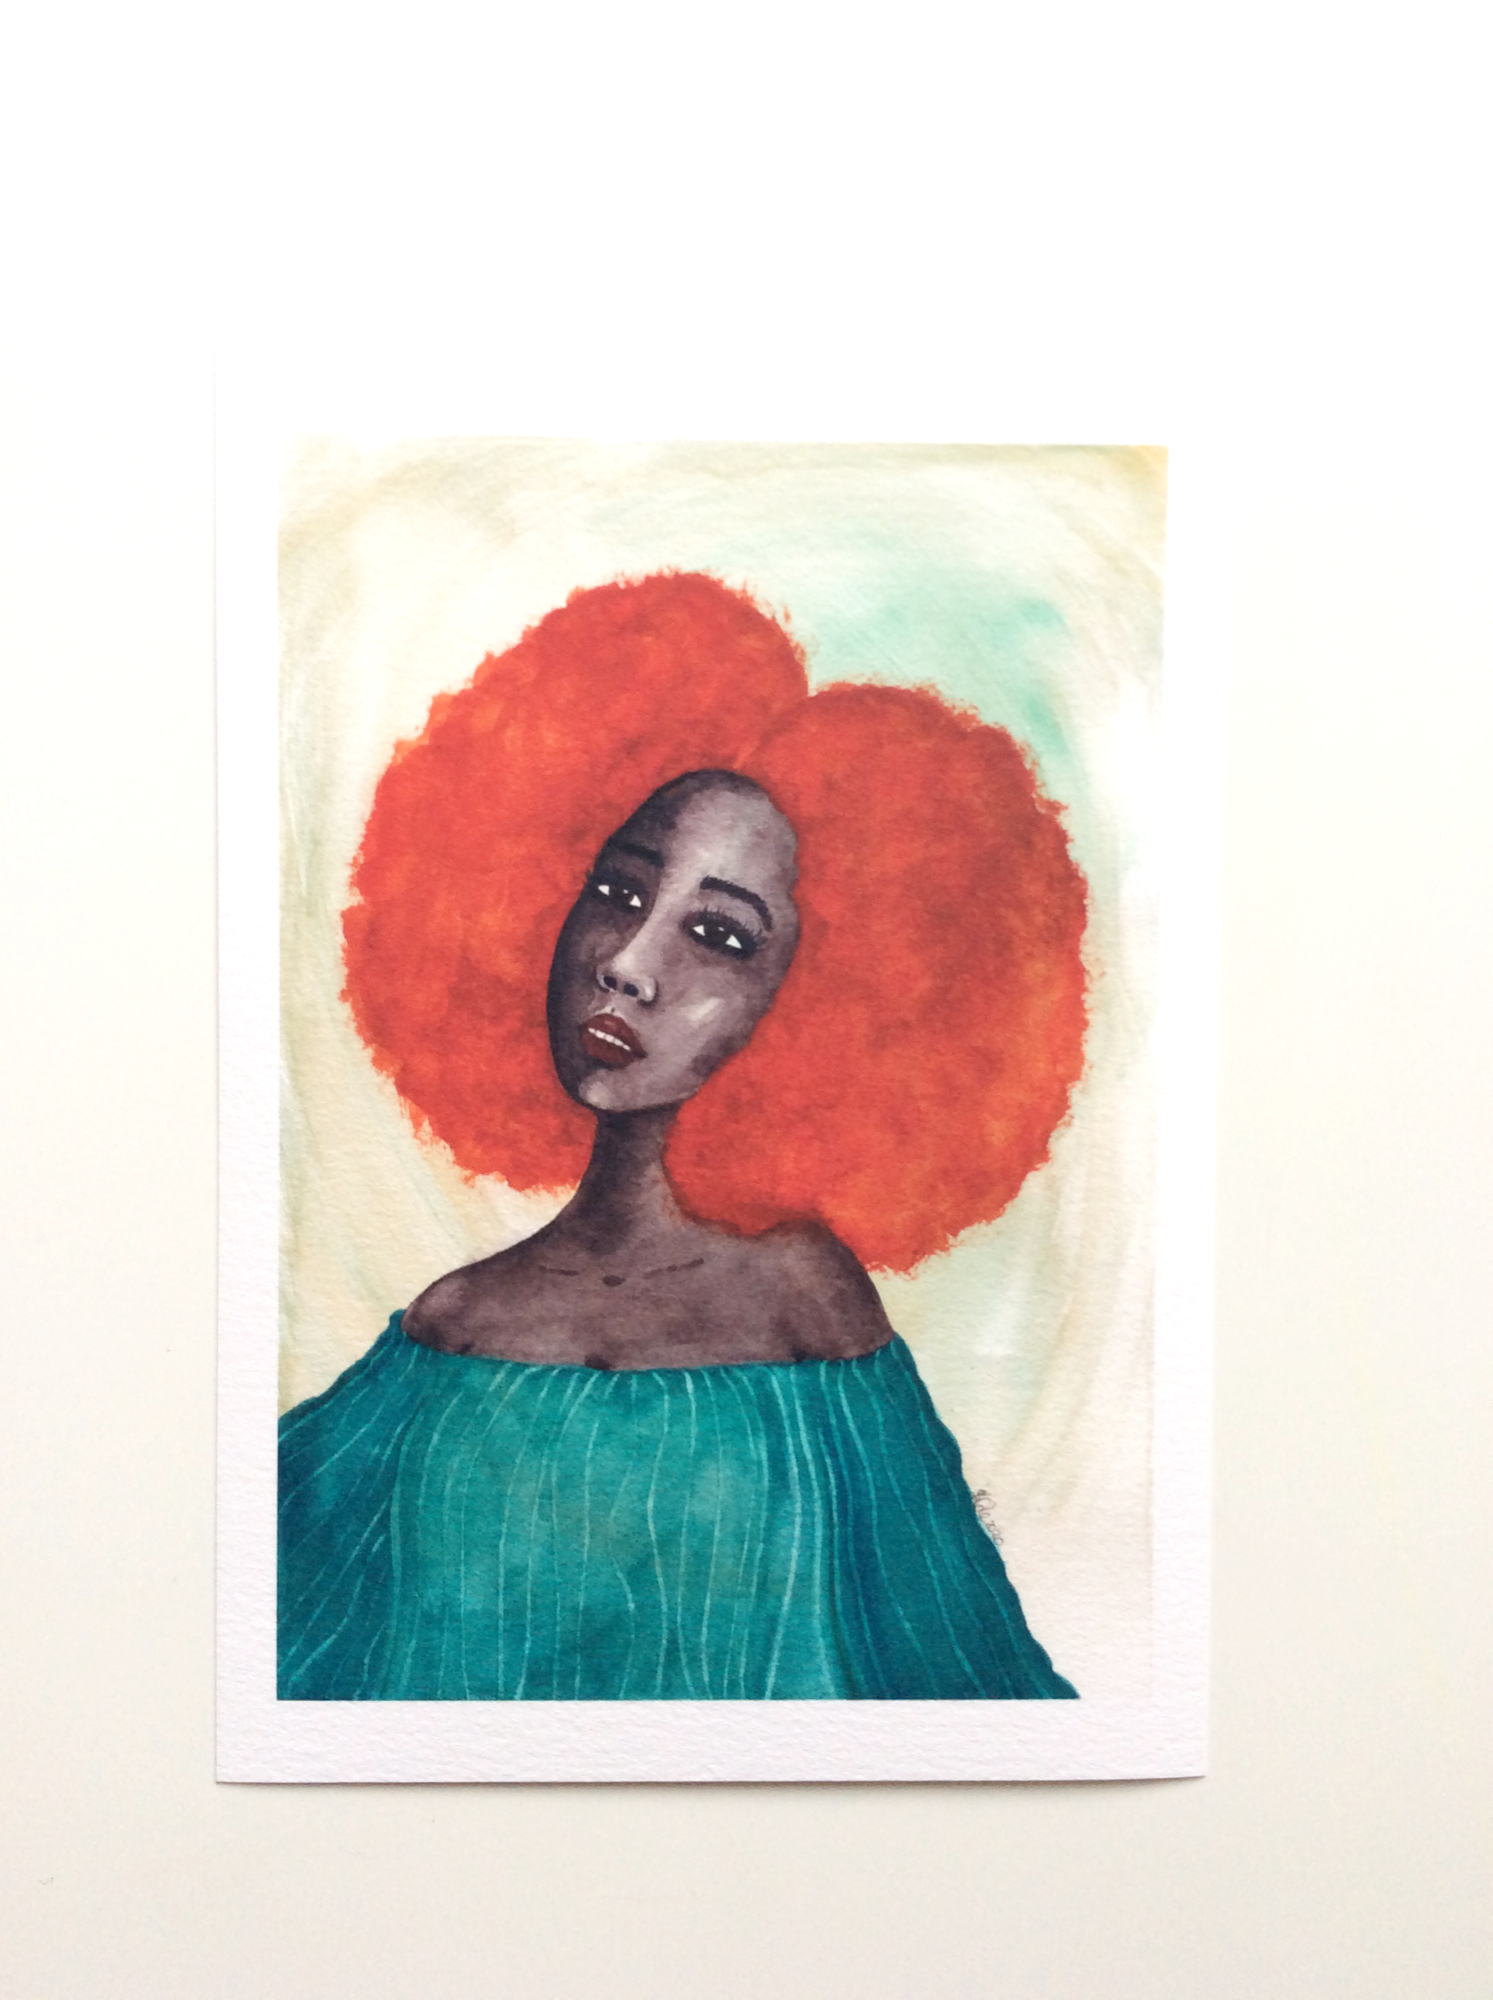 Black Woman Artwork print called 'New Dawn' by Stacey-Ann Cole